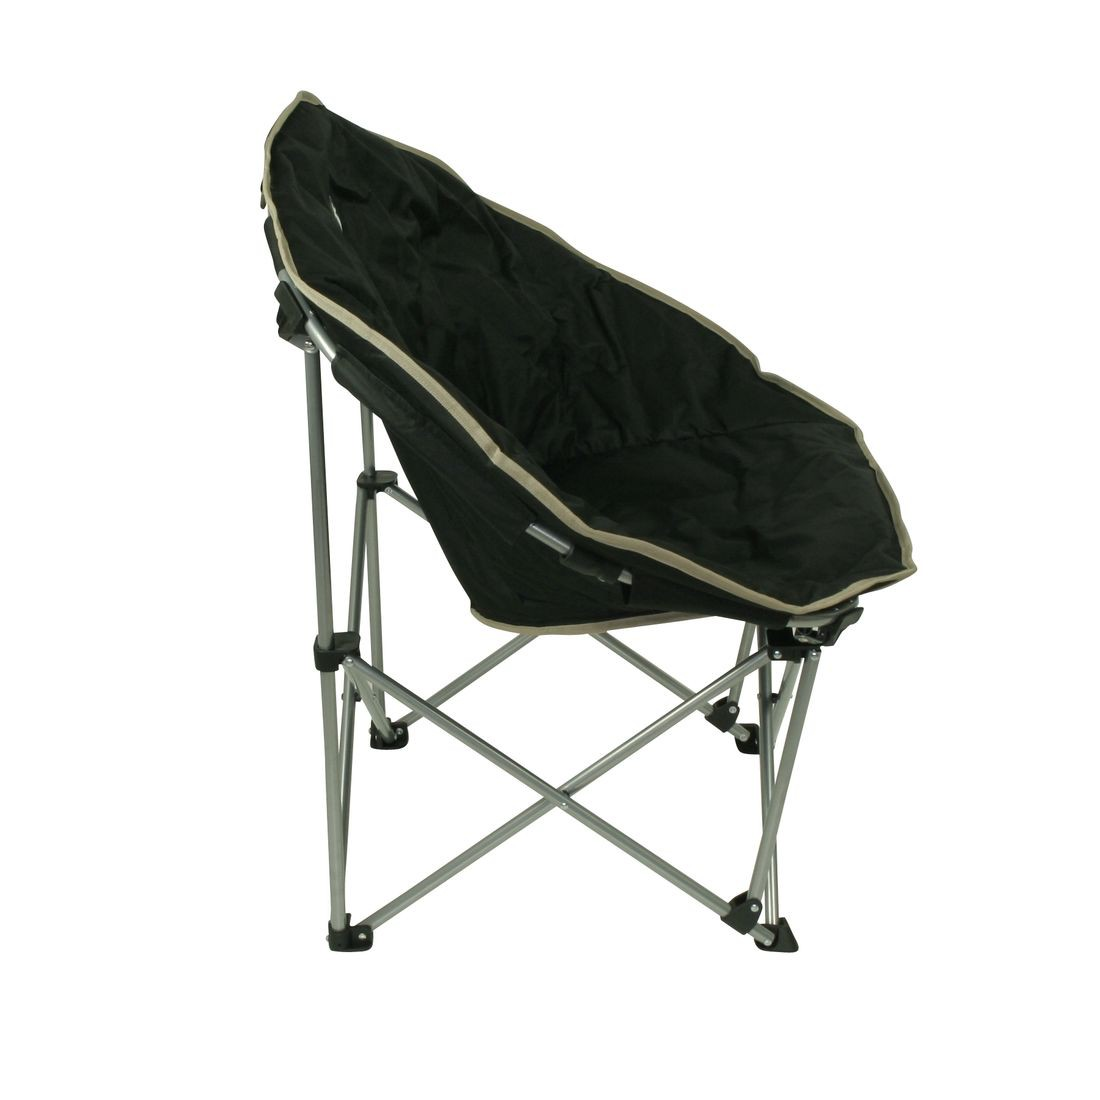 Handy Camping Stools ~ T moonchair relax camping chair max kg very